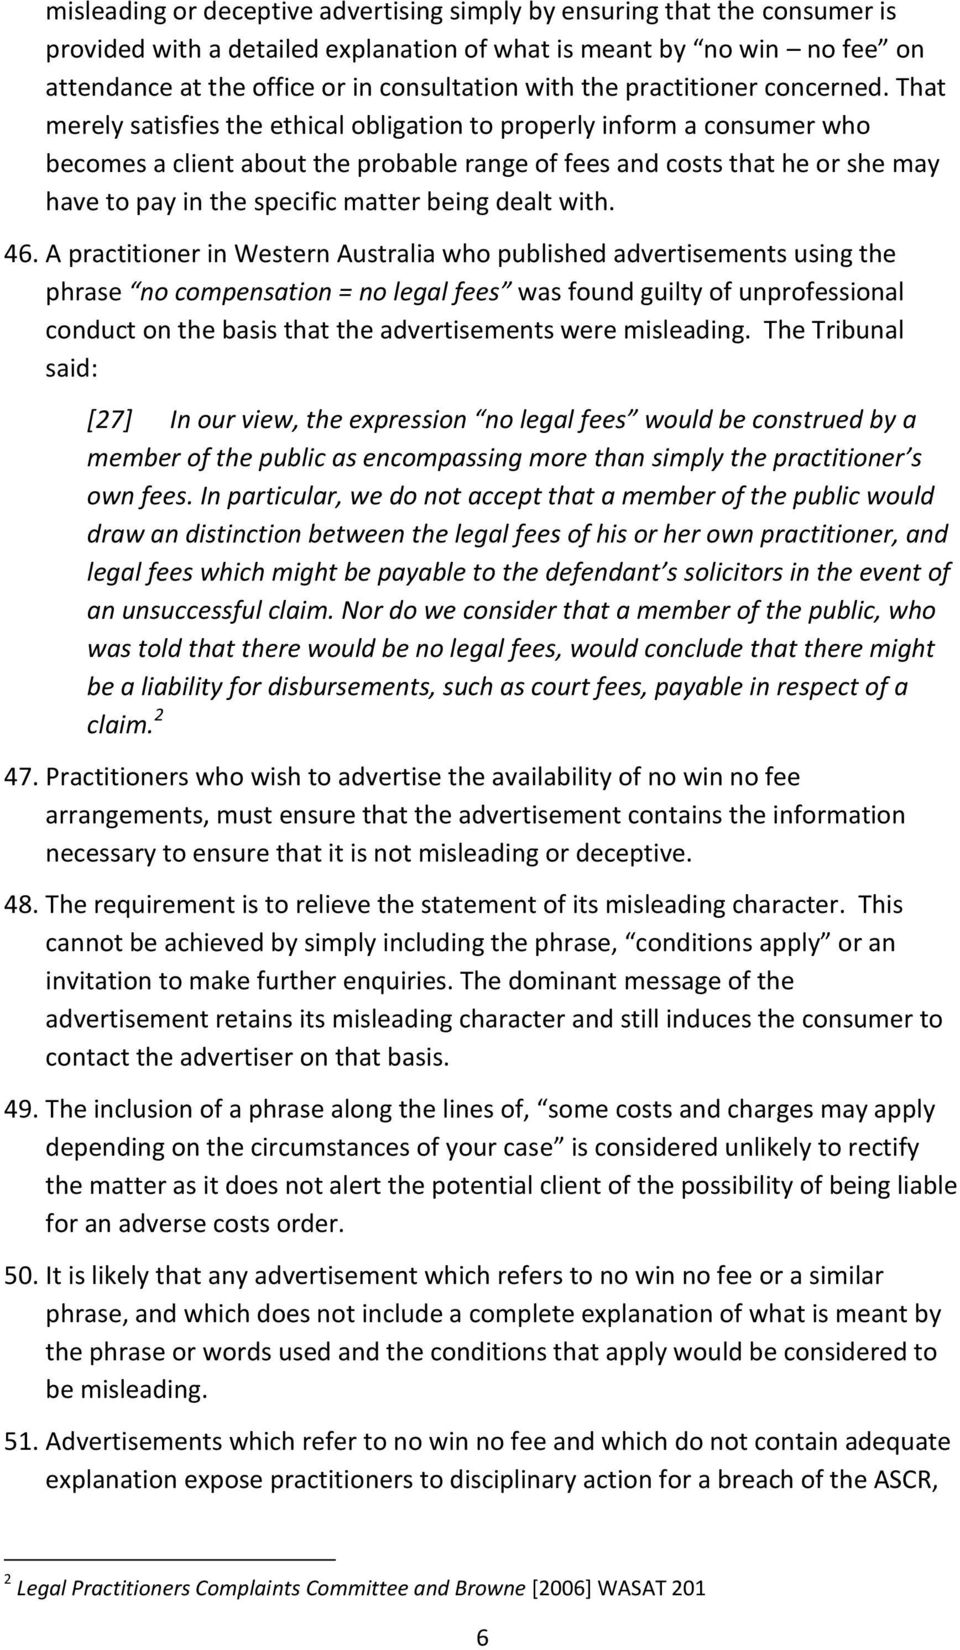 That merely satisfies the ethical obligation to properly inform a consumer who becomes a client about the probable range of fees and costs that he or she may have to pay in the specific matter being